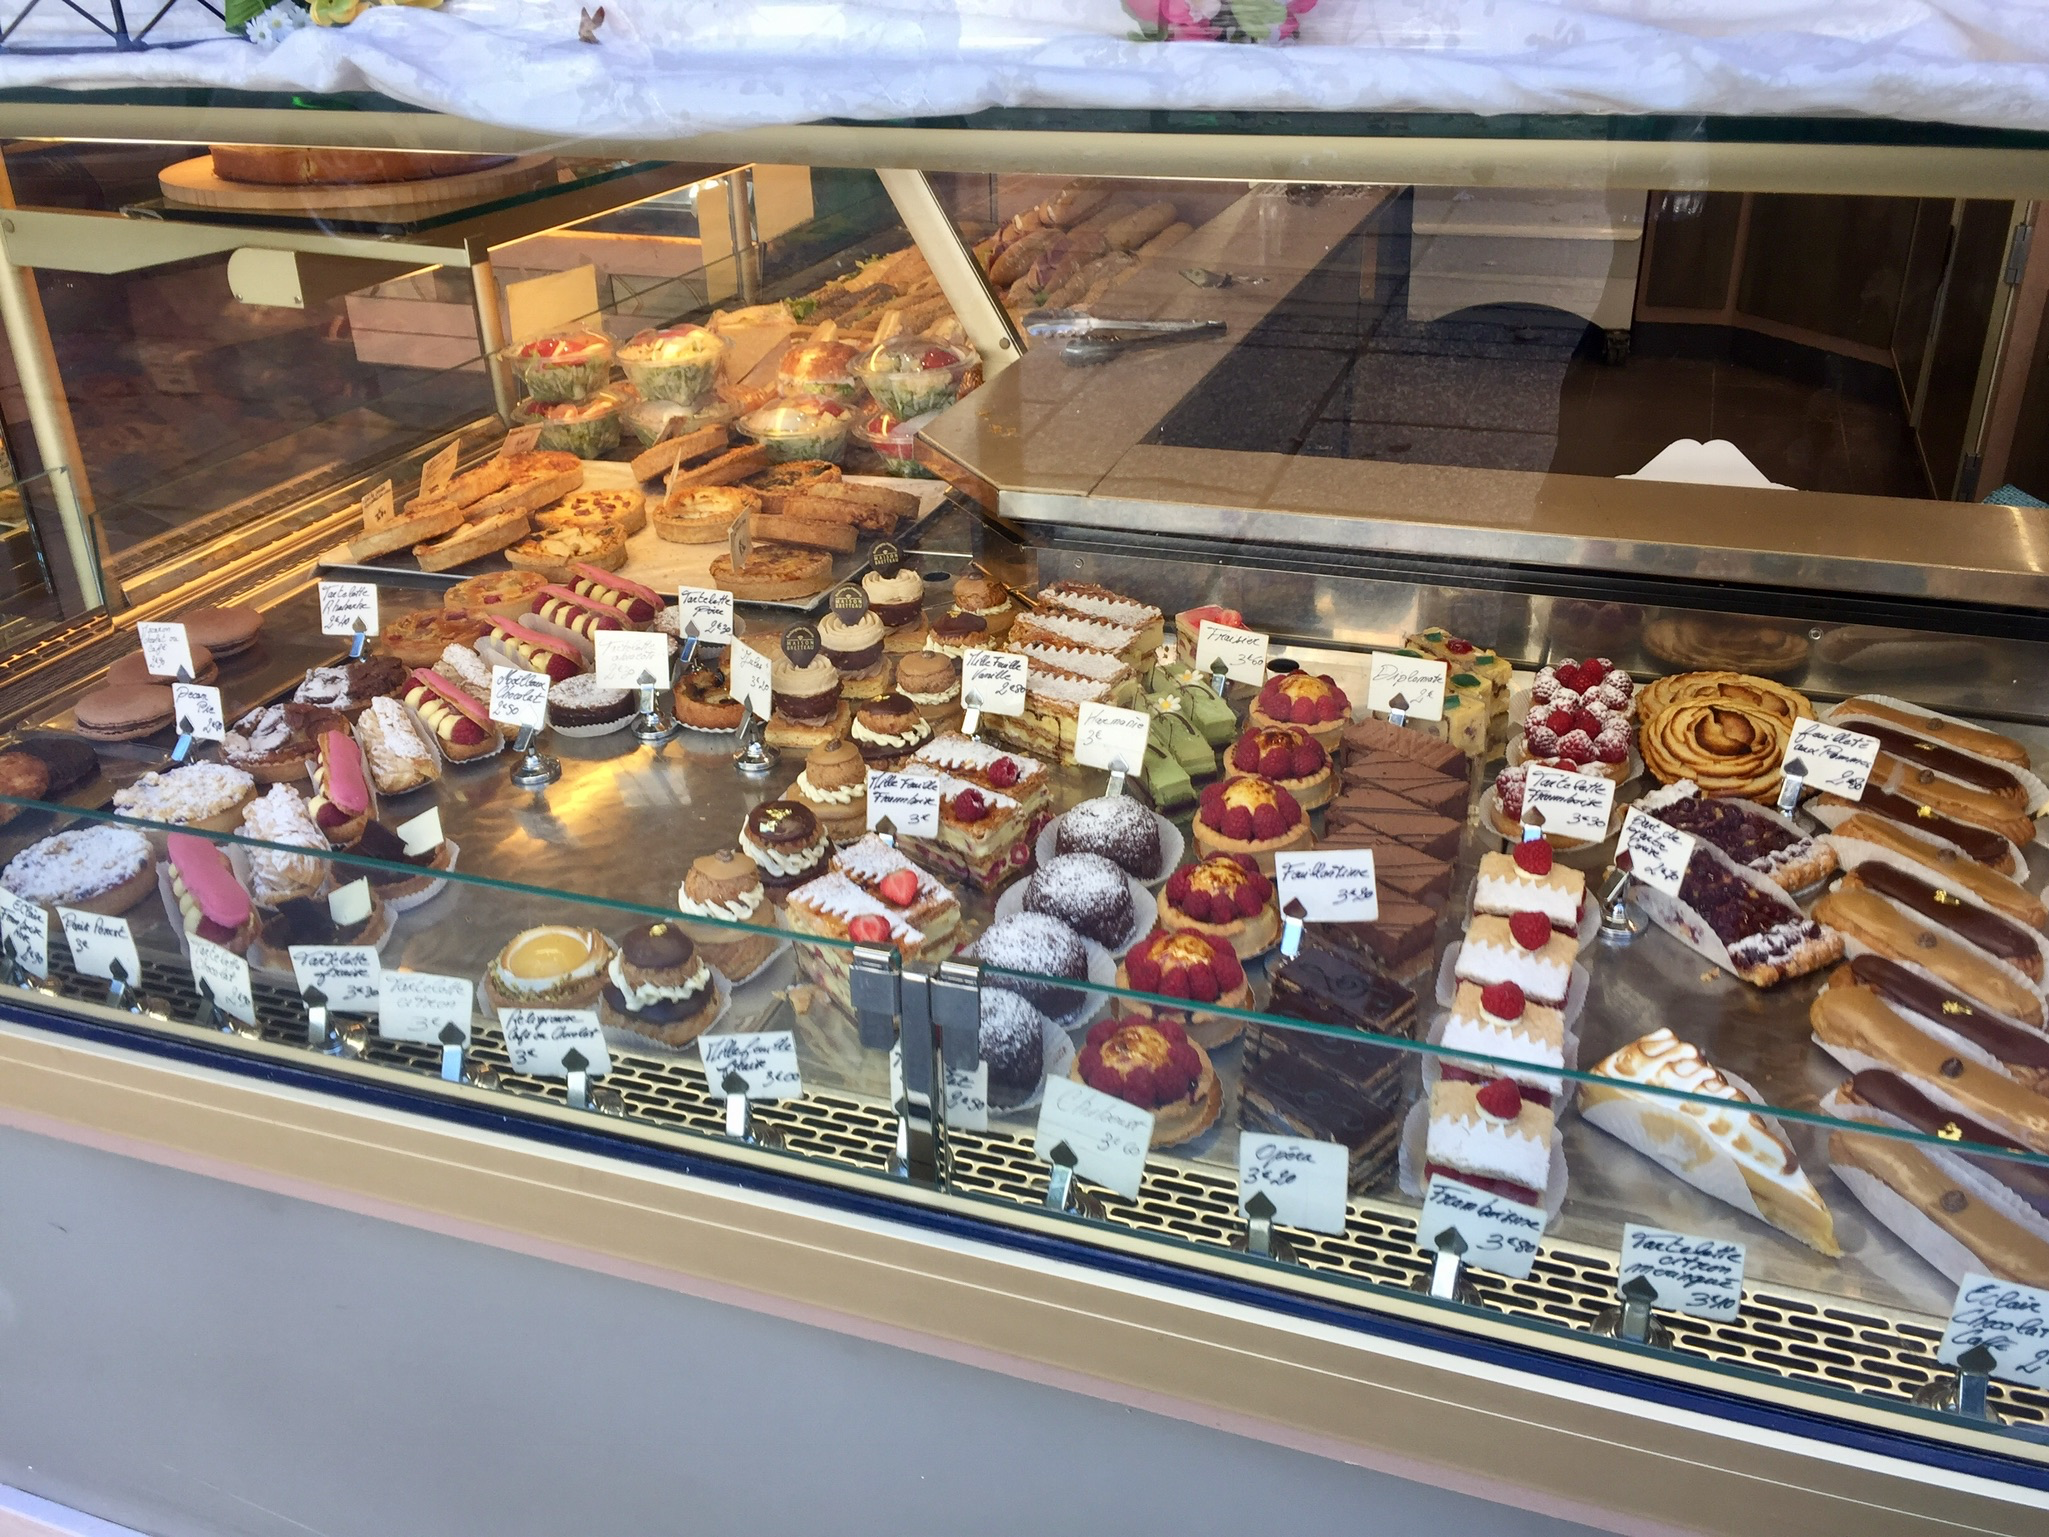 ALL the pastries!